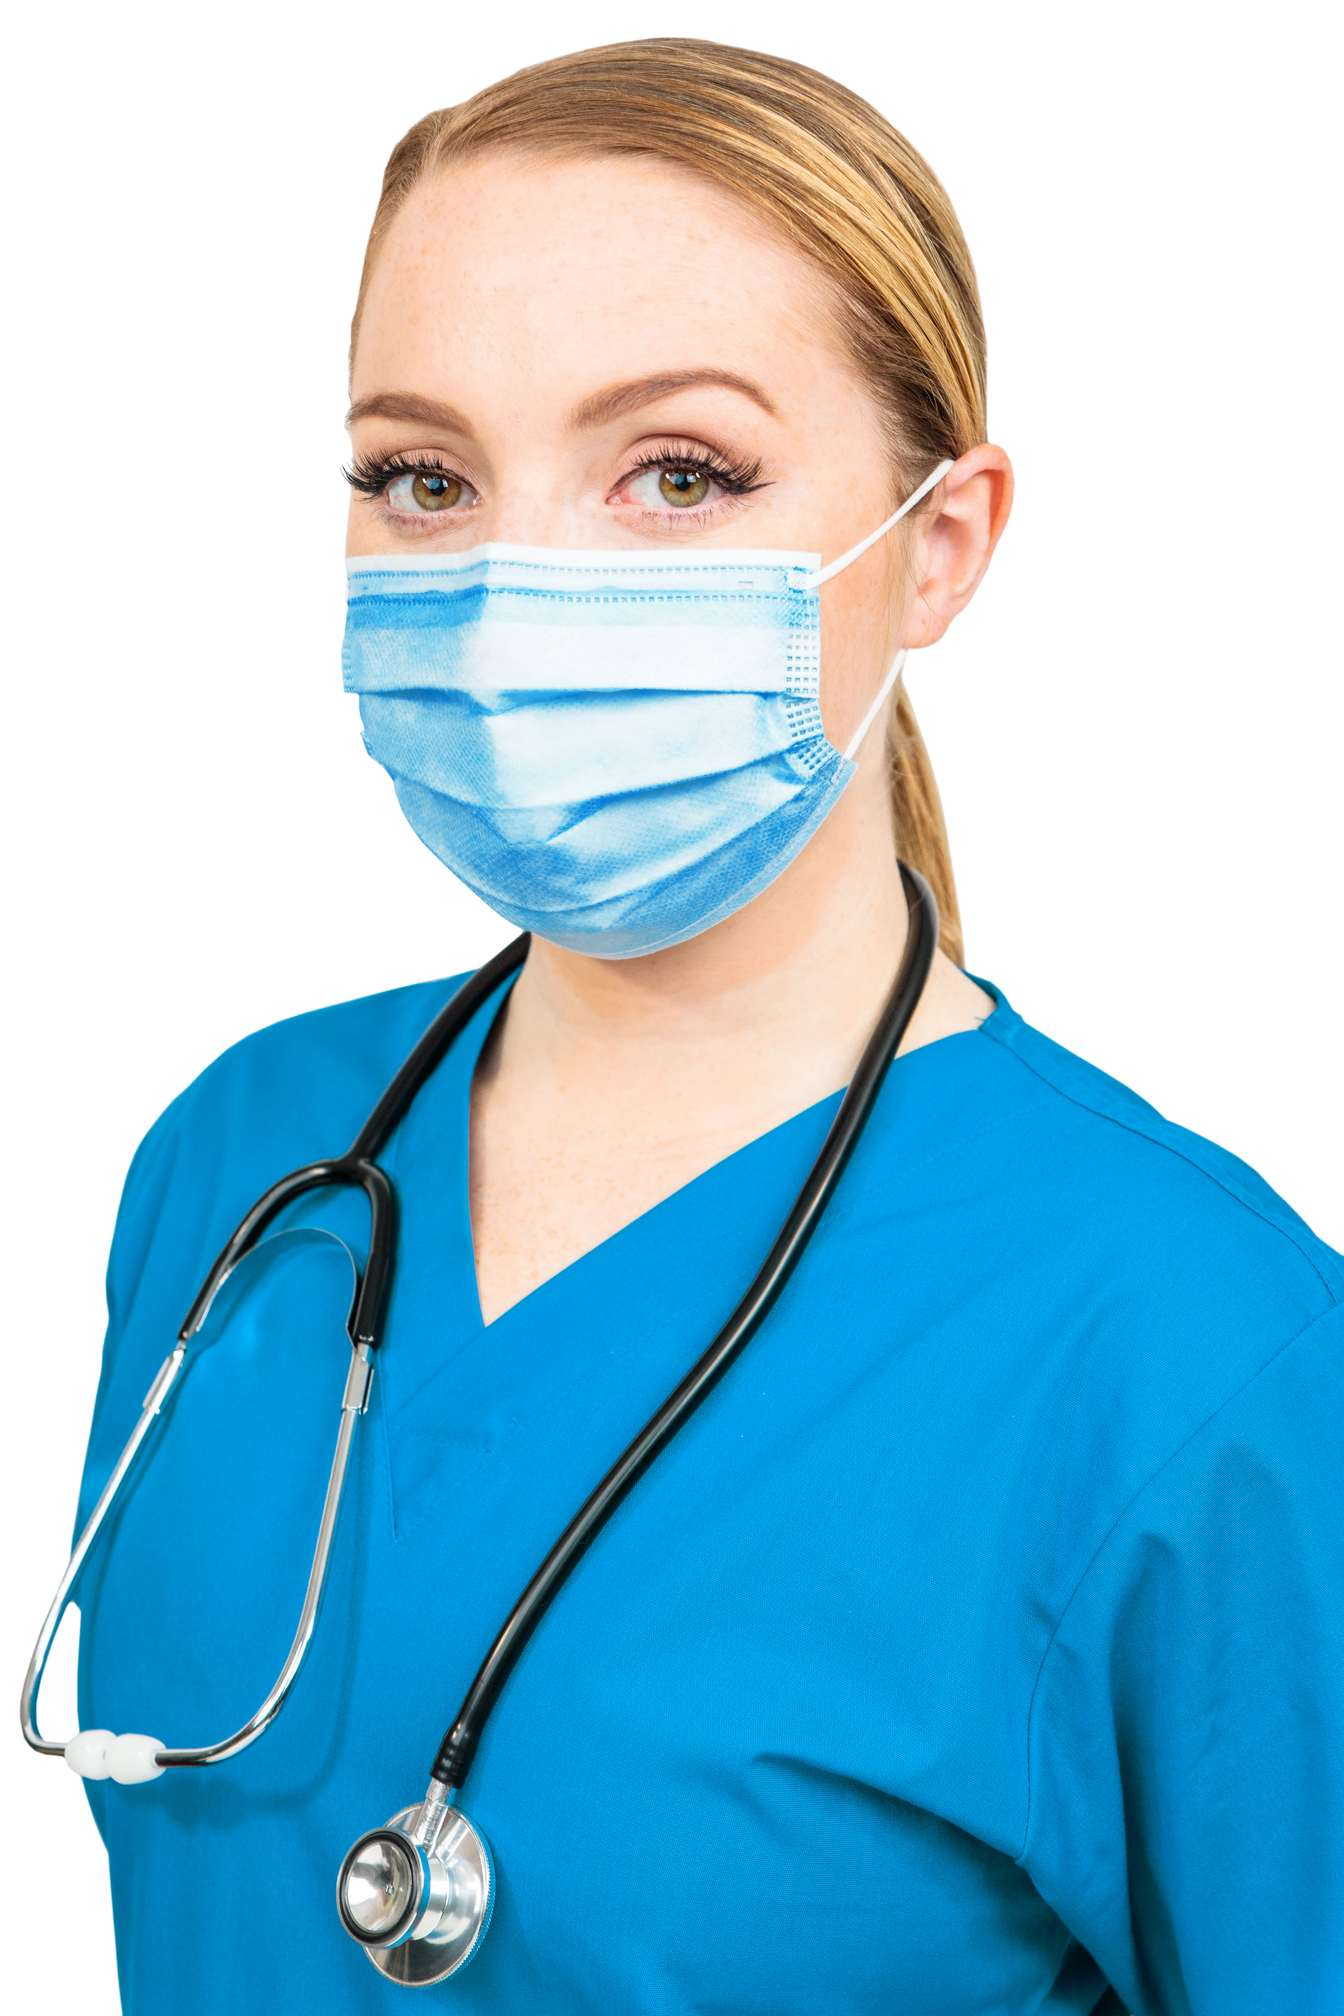 procedure mask on woman medical professional looking towards the camera